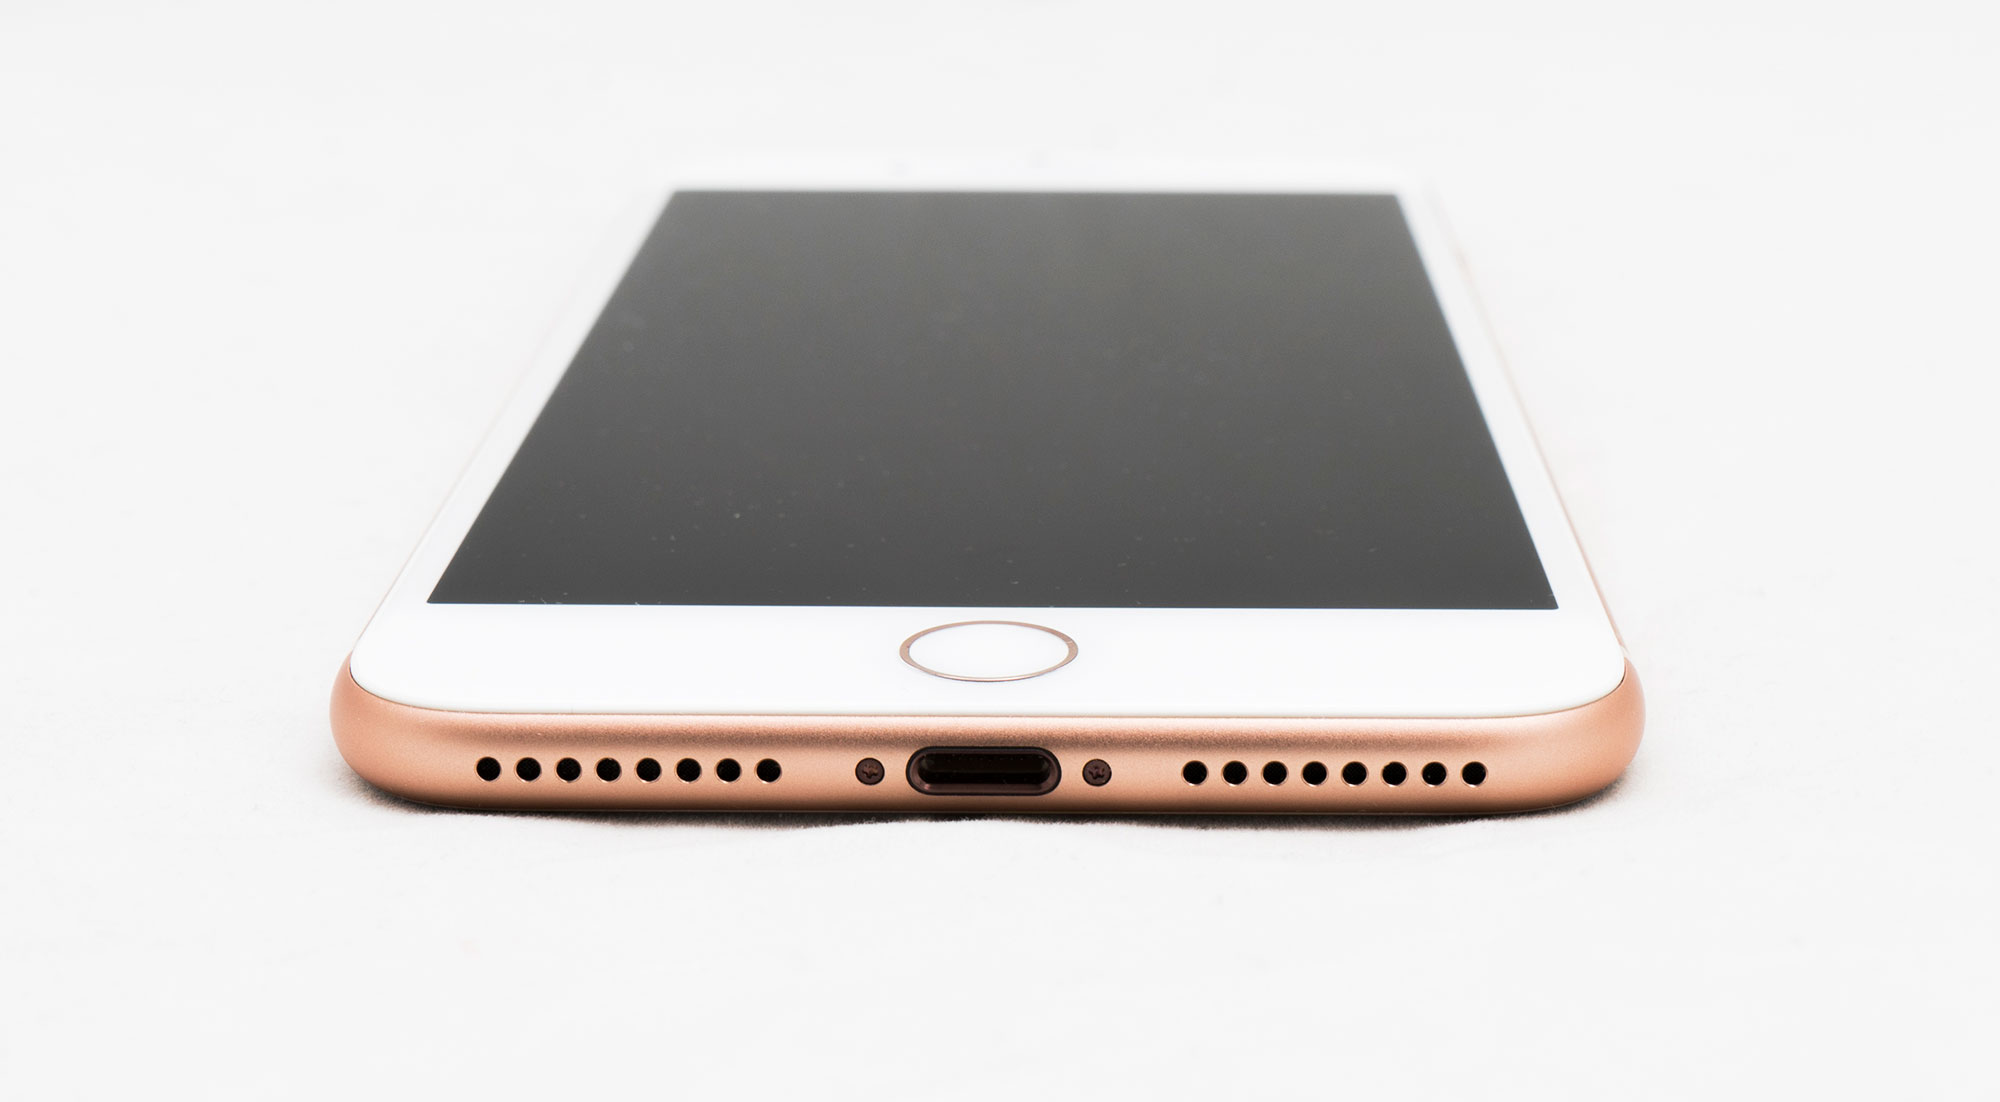 Image result for iPhone 8 - HD images